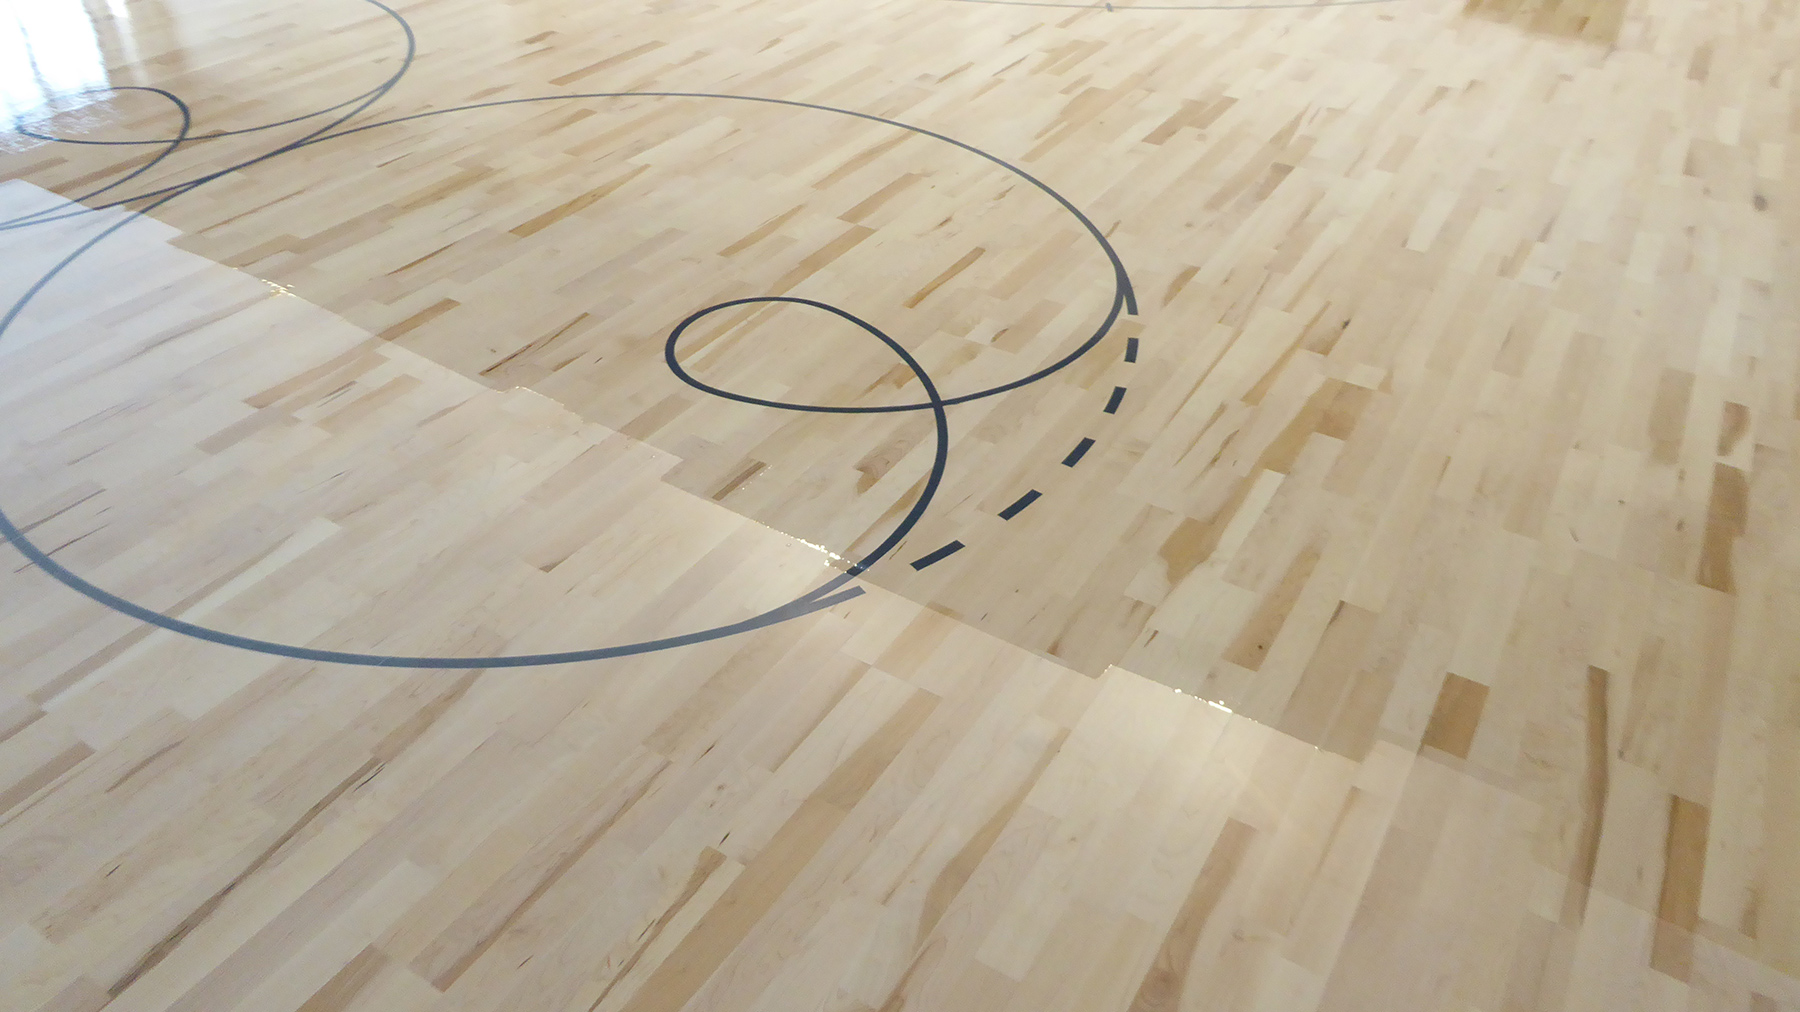 The painting of the flooring